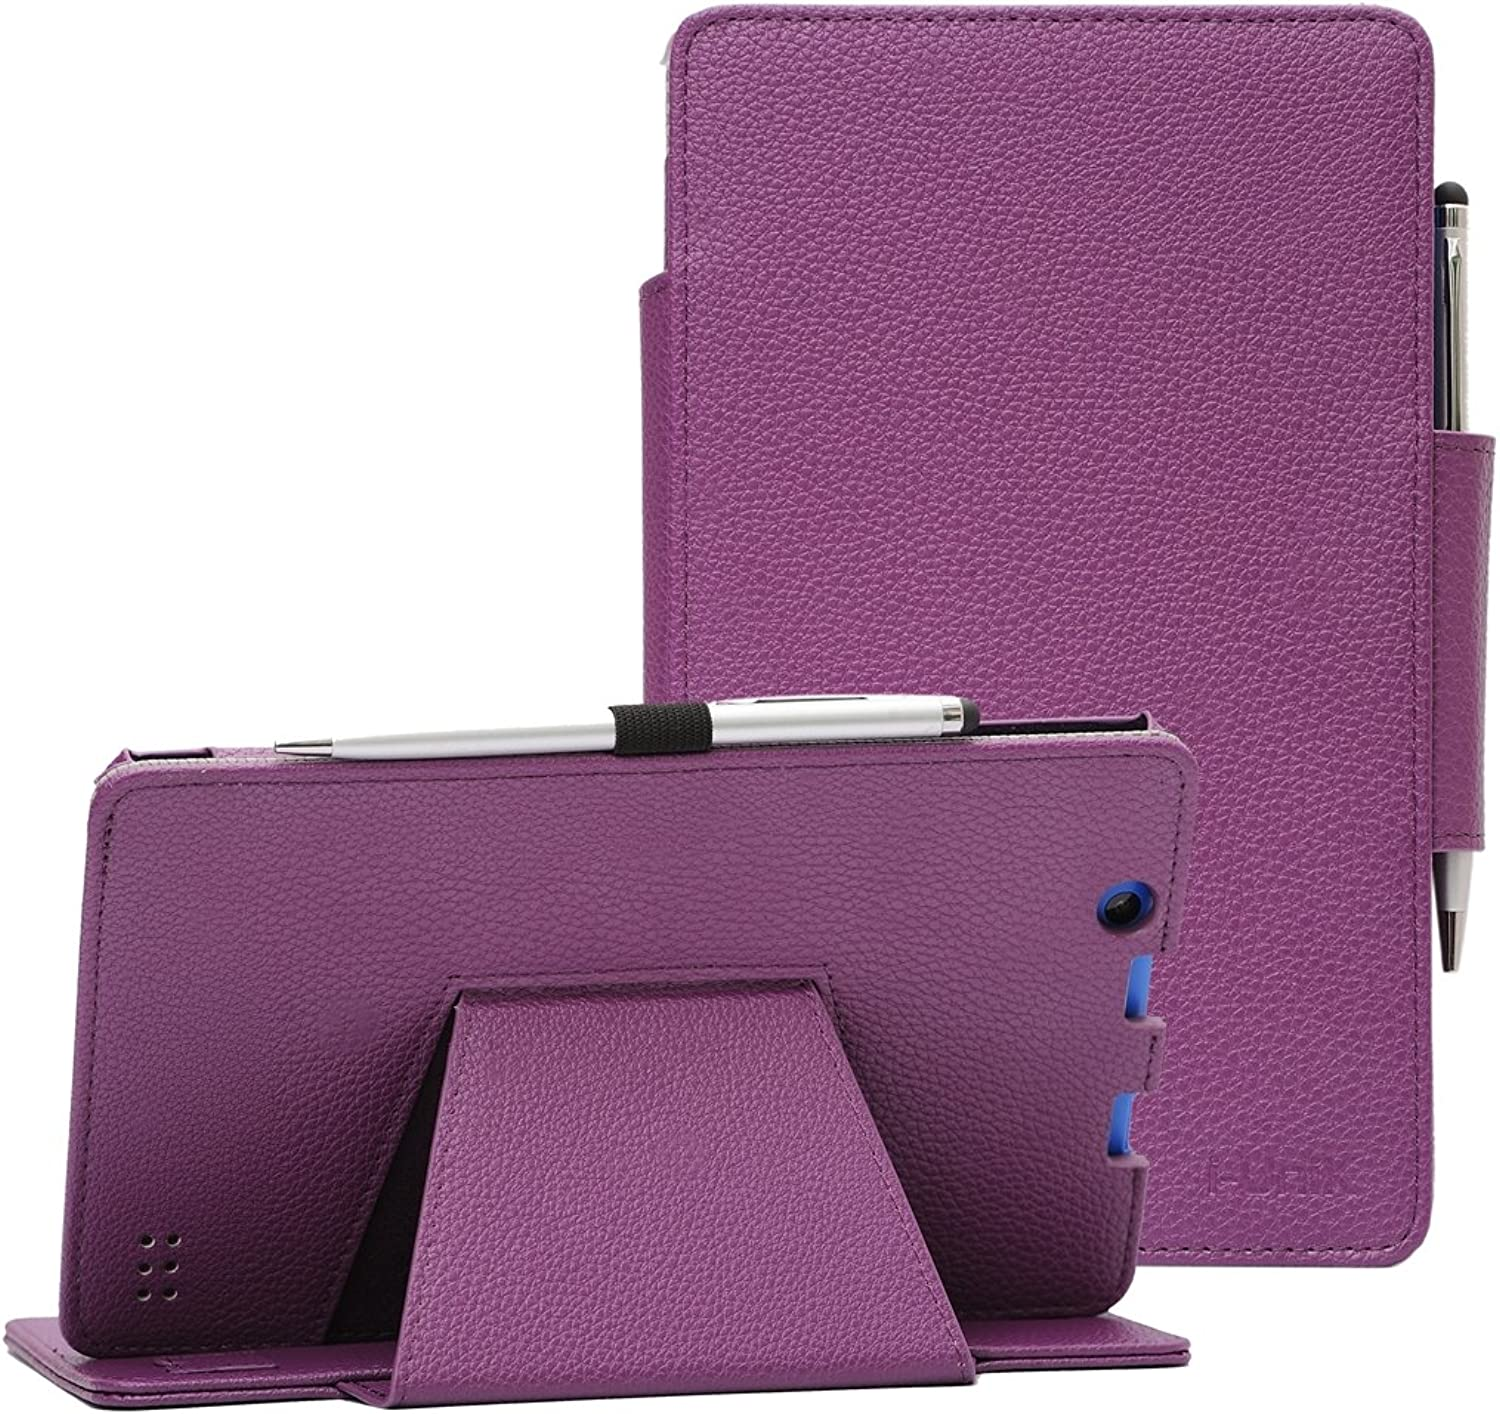 Nextbook Ares 8A case, i-UniK Nextbook Ares 8A Model  NX16A8116 K R B S Android 6.0 Tablet Cover CASE [Bonus Stylus] (Purple)